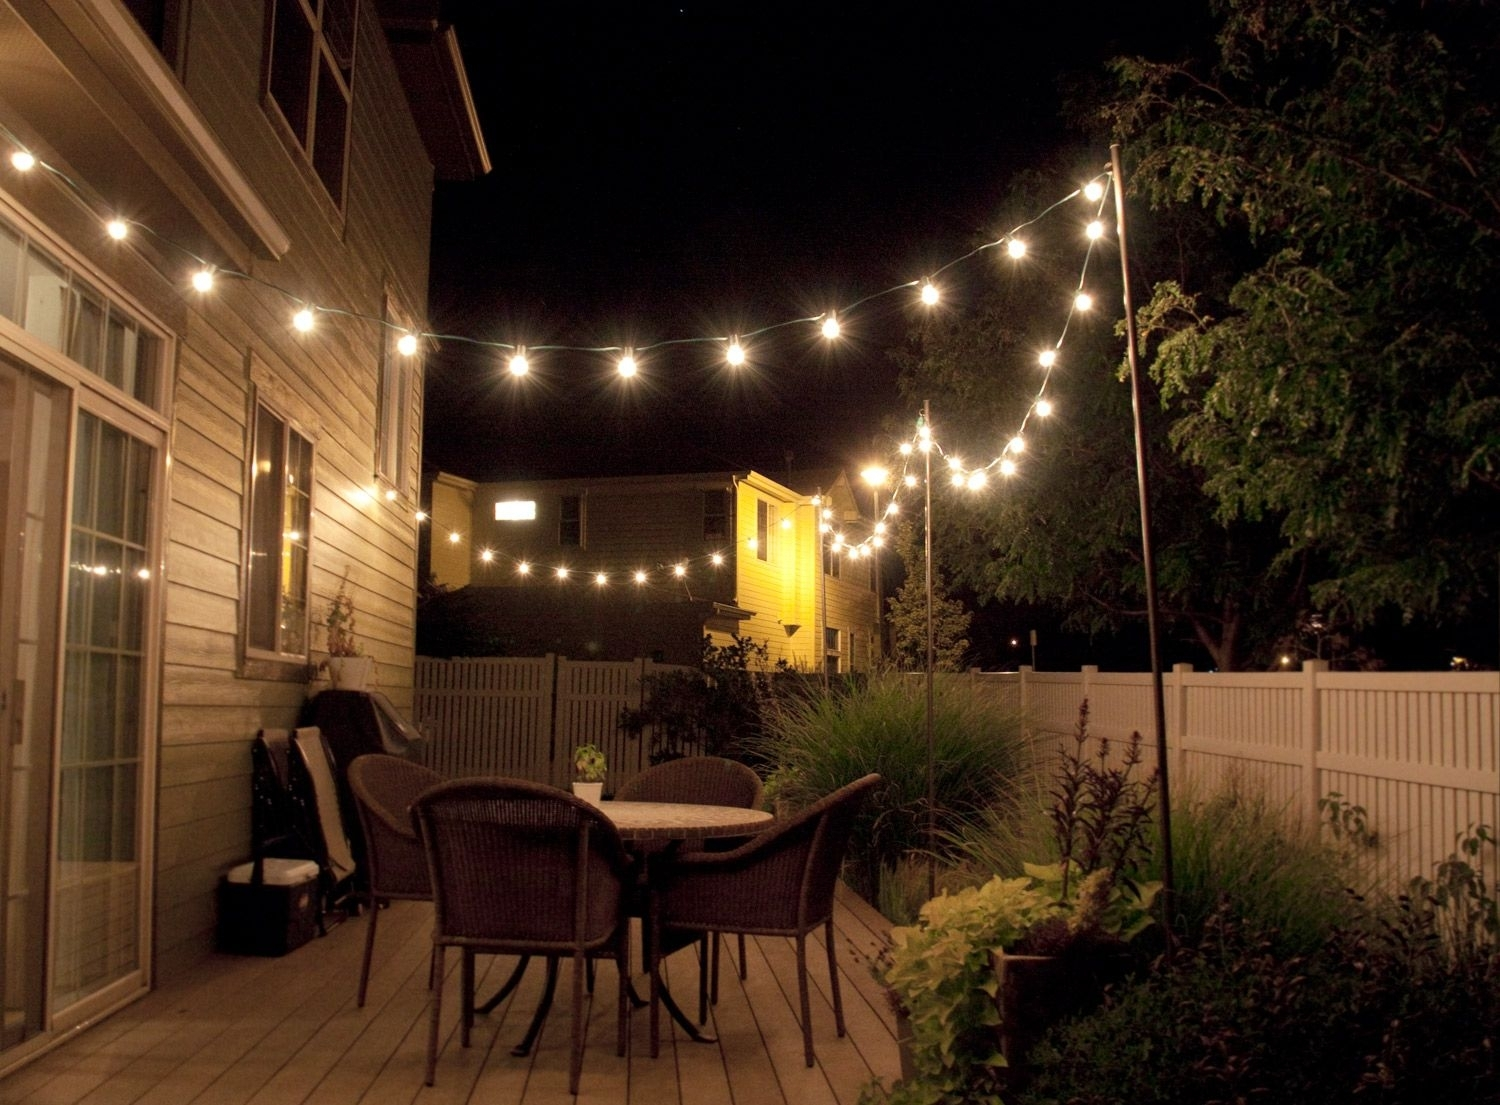 How To Make Inexpensive Poles To Hang String Lights On – Café Style Pertaining To Outdoor Hanging String Lanterns (View 10 of 15)